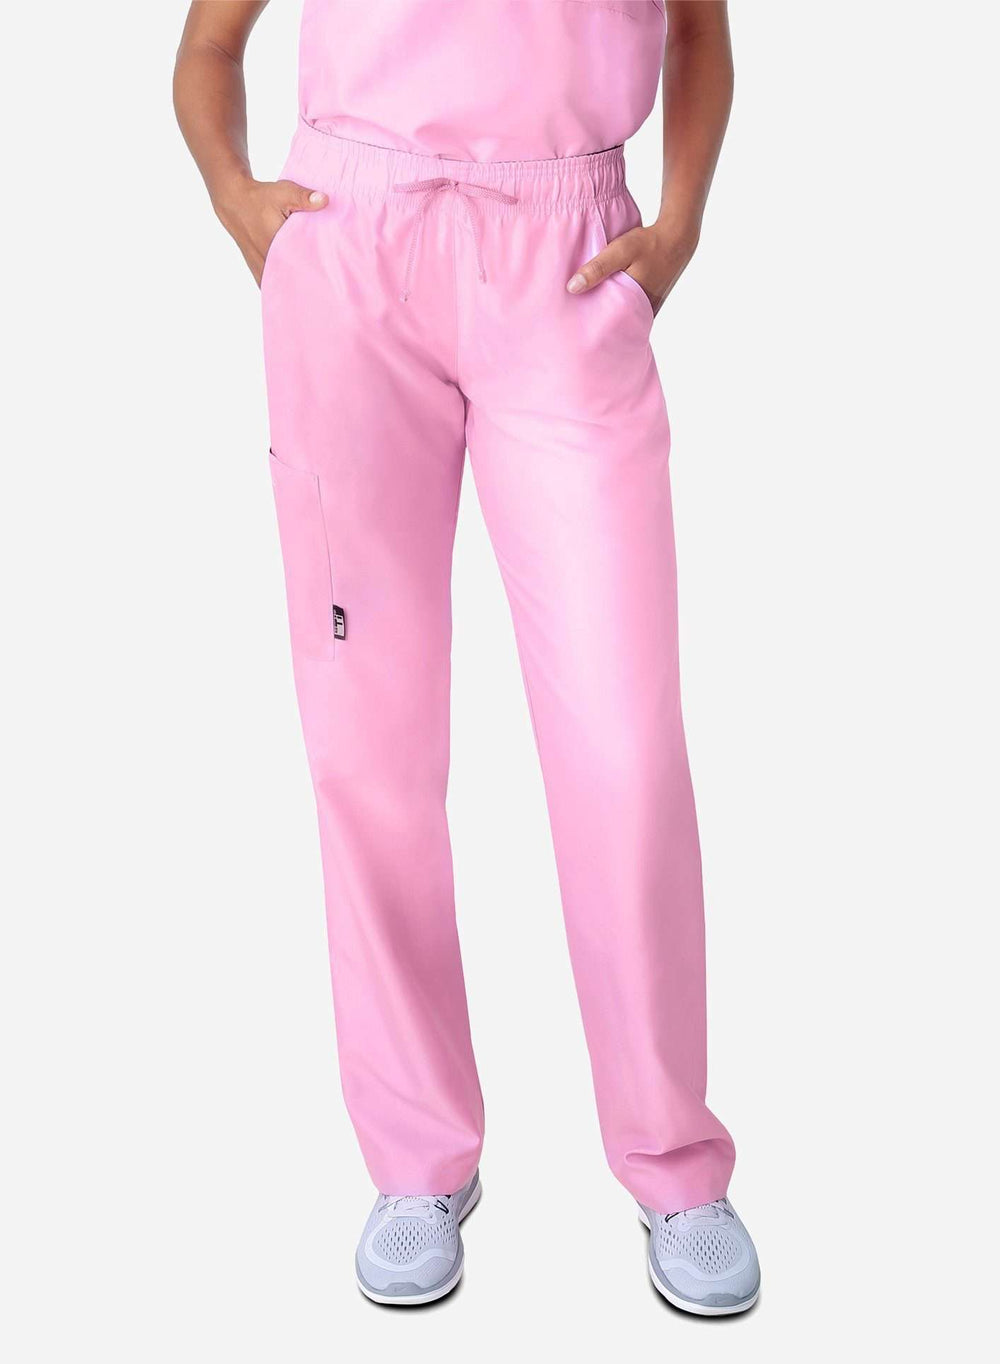 womens simple straight leg scrub pants light pink